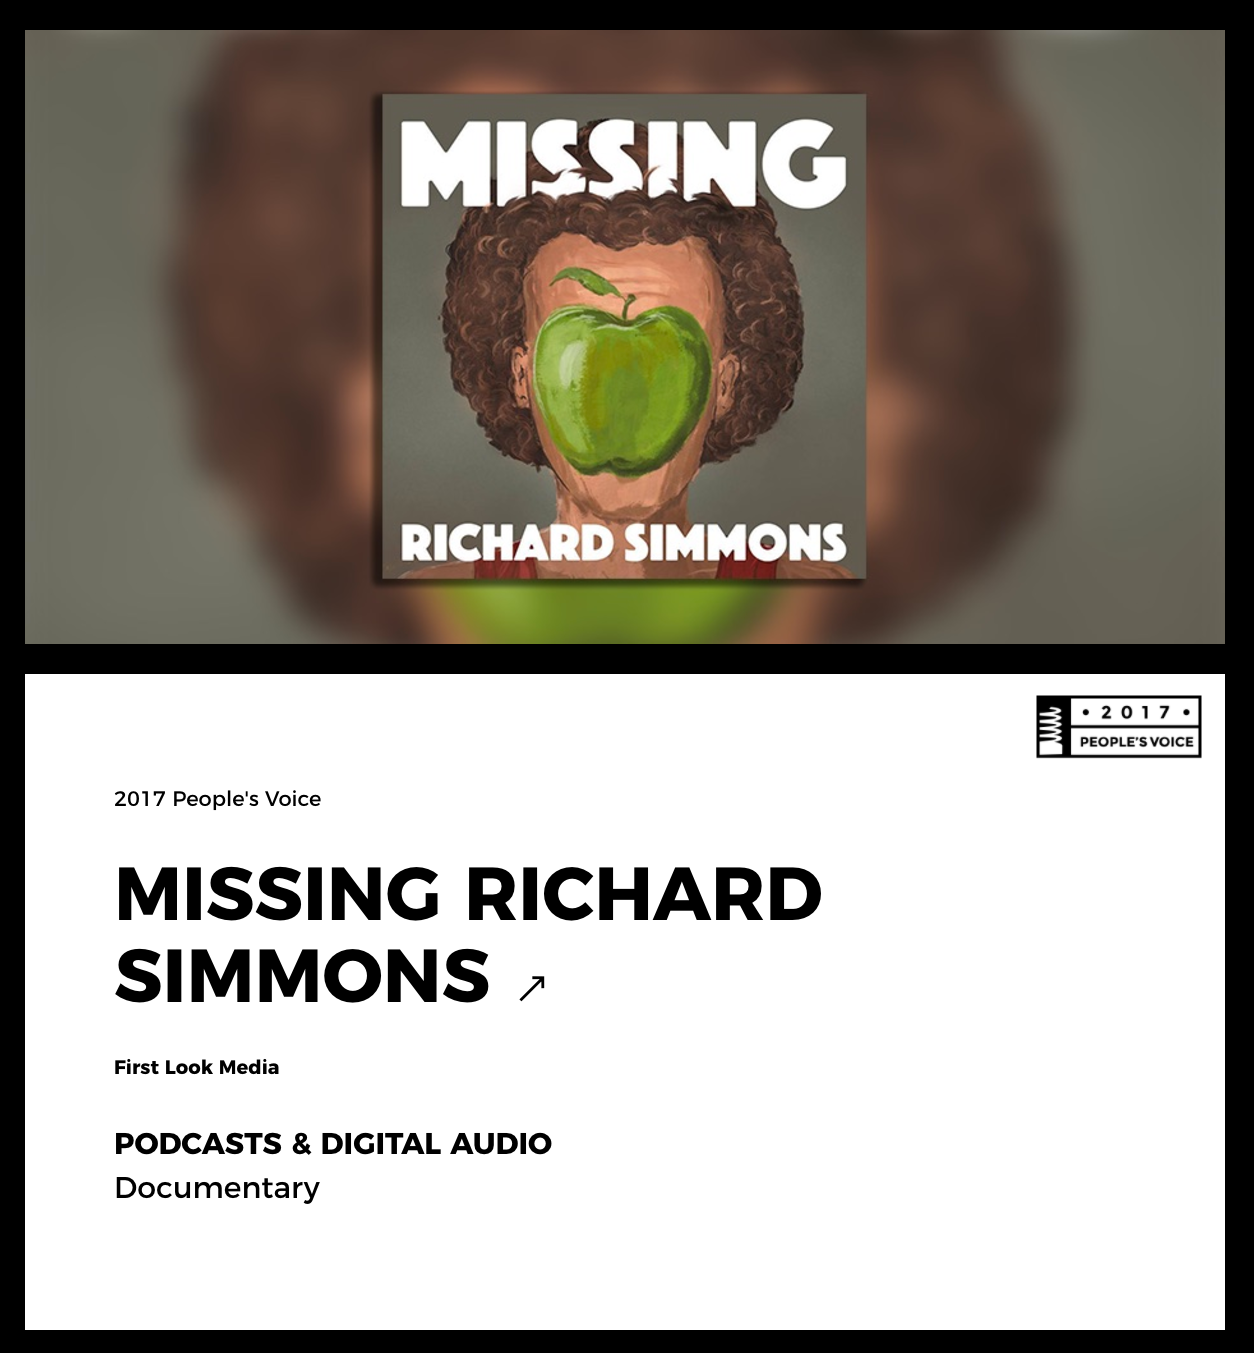 Richard Simmons Webby Award